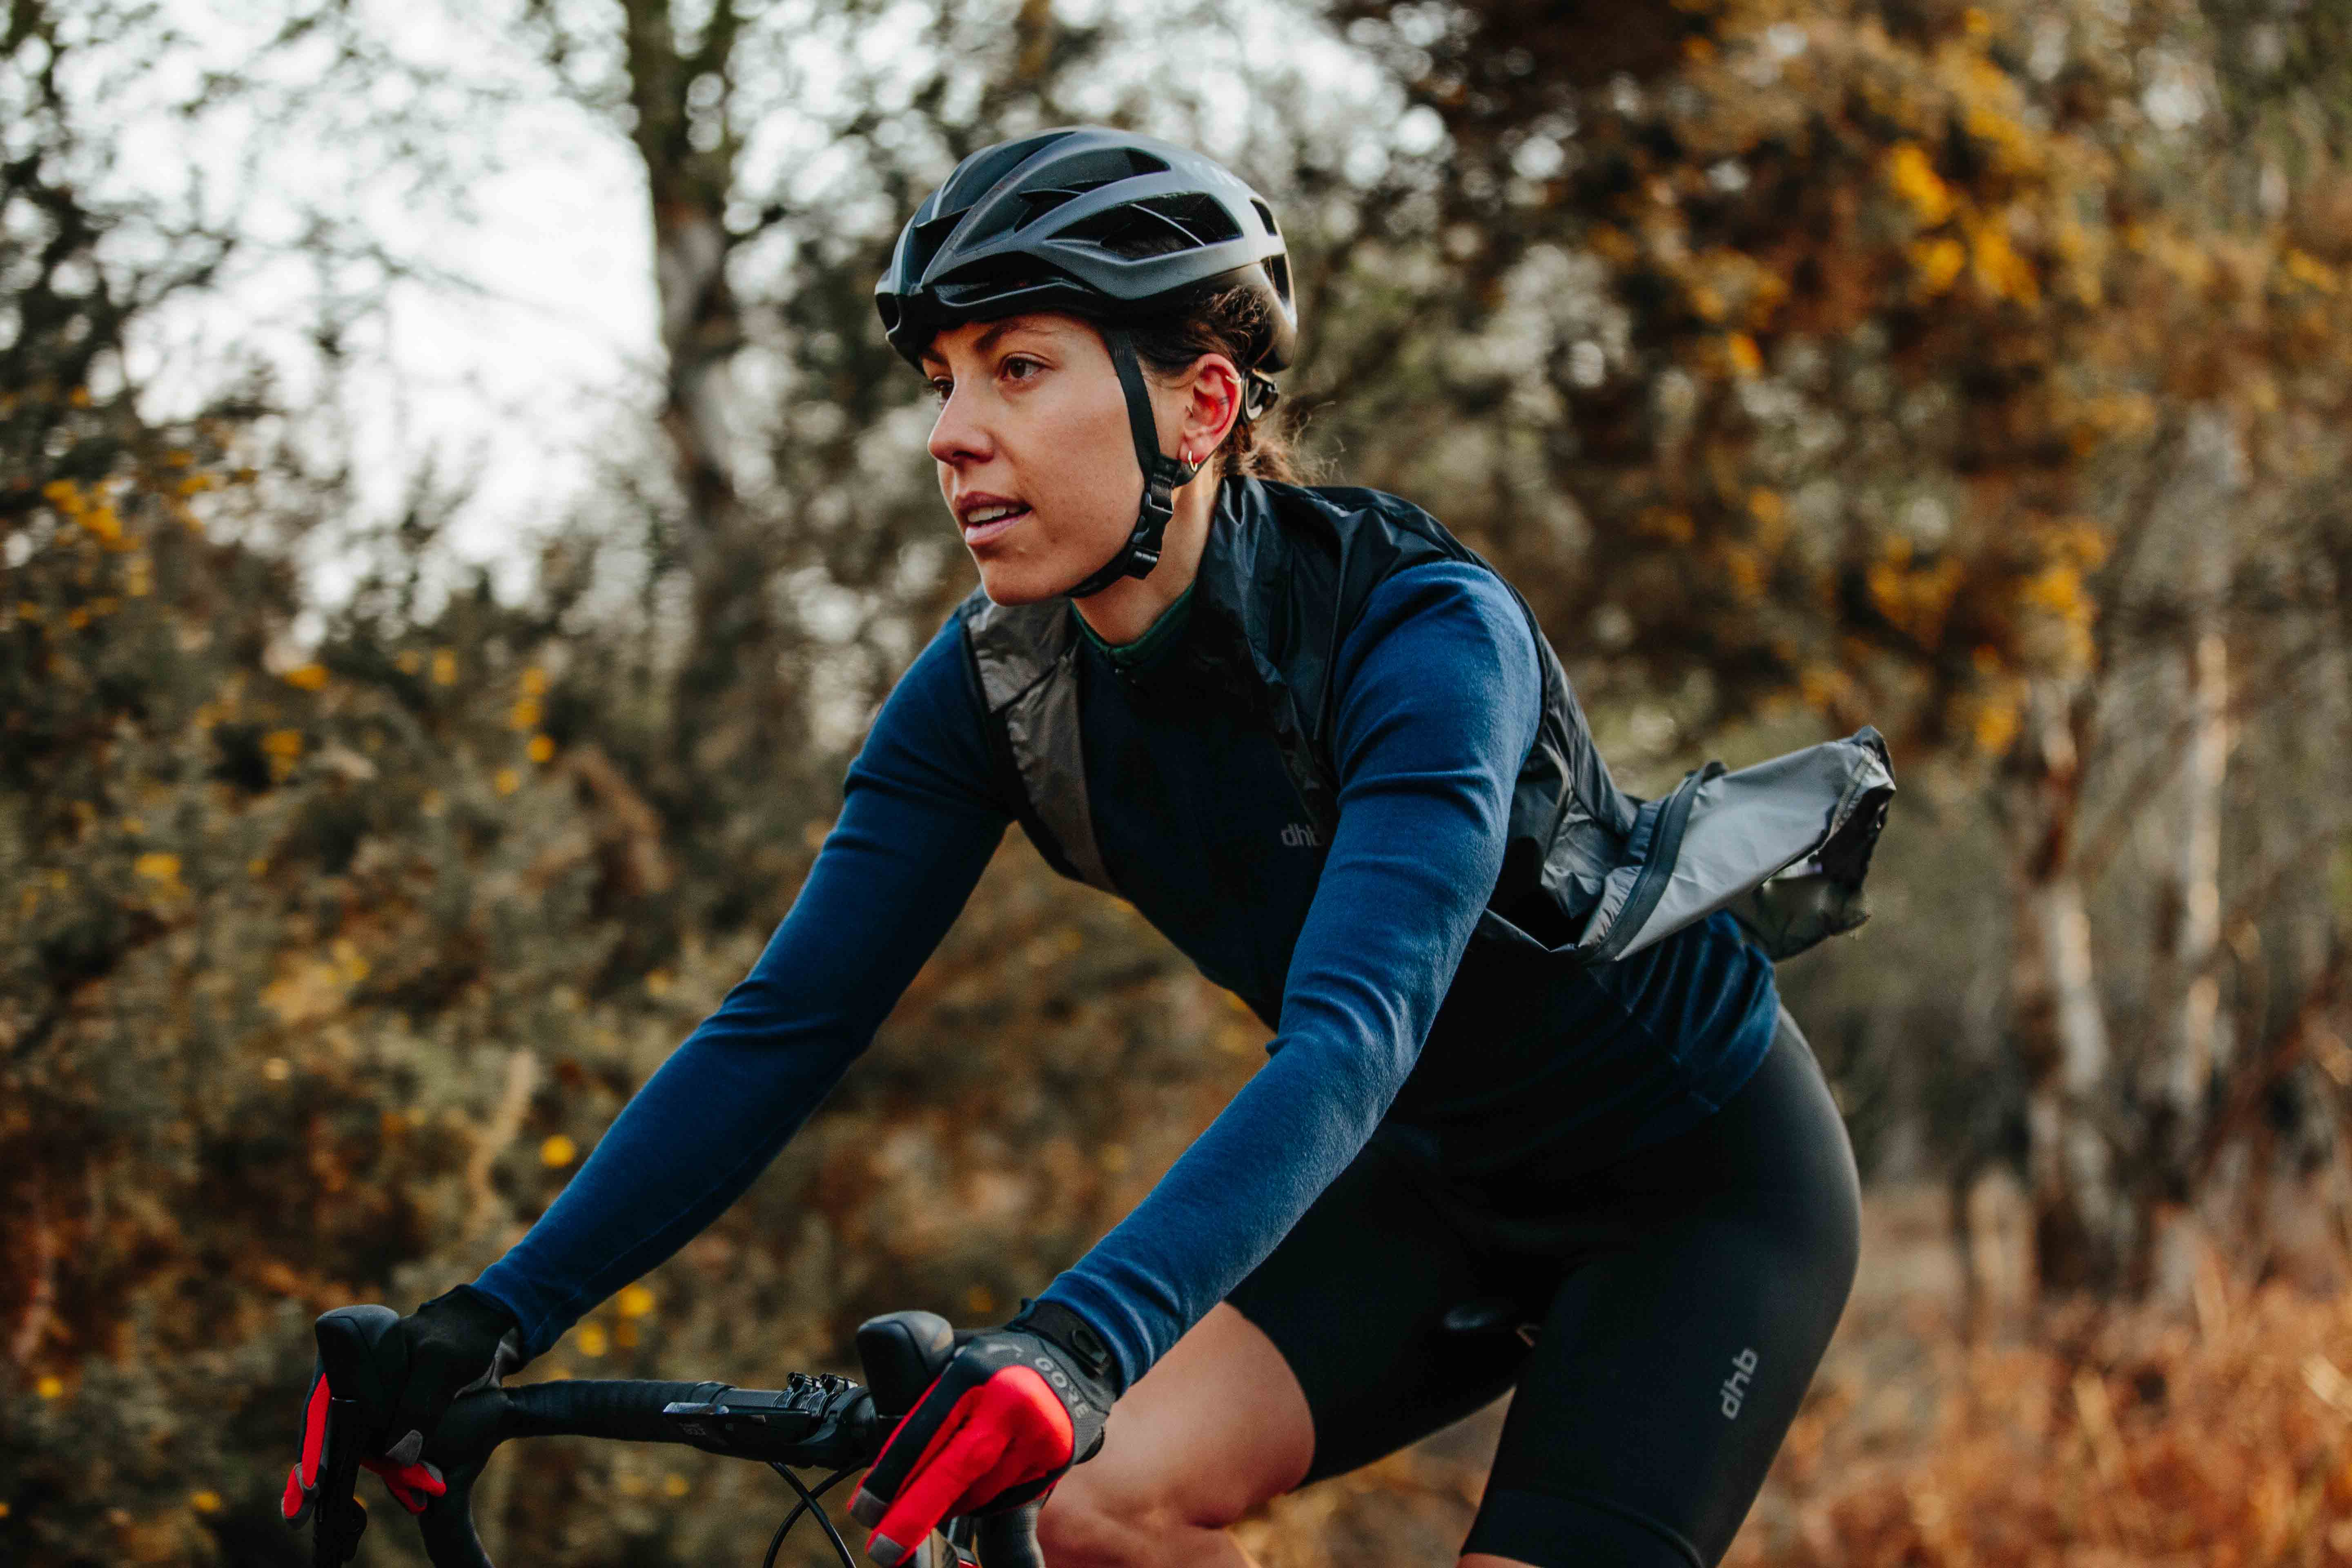 How To Get The Right Position On Your Road Bike